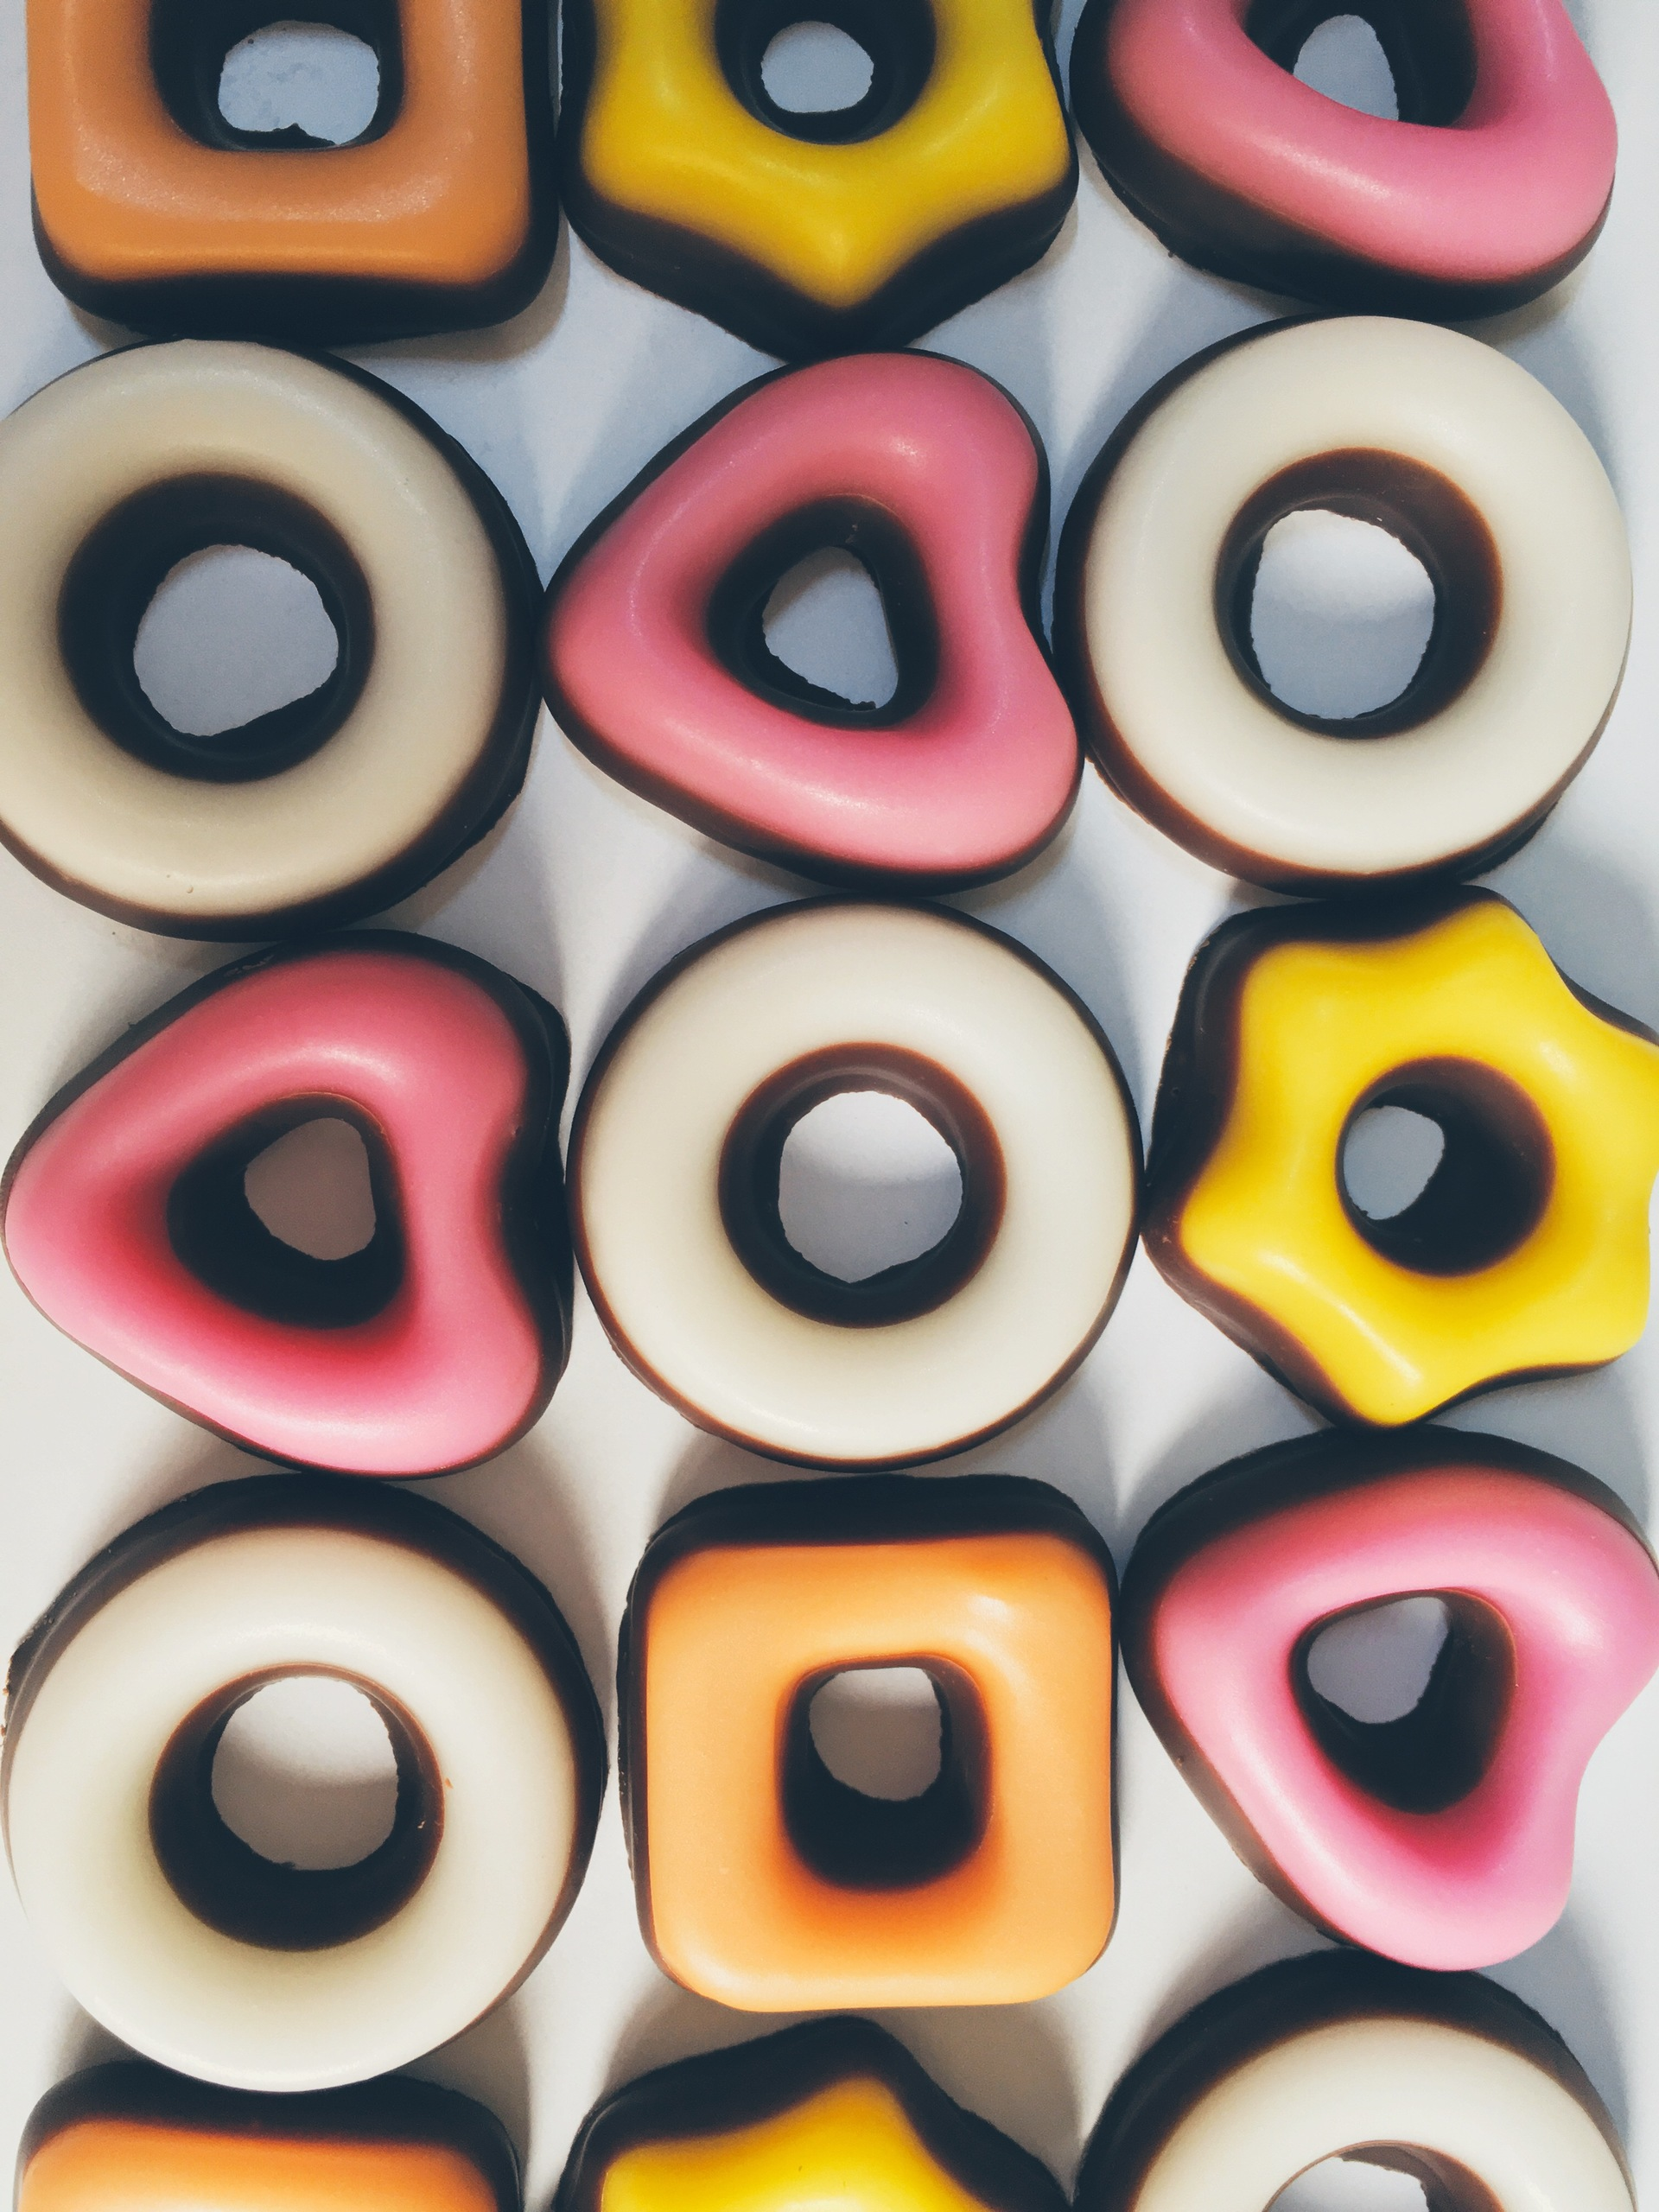 Candies | christmas, color image, photography (image), vertical